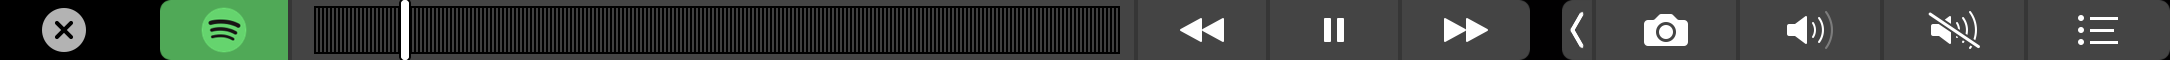 Touch Bar Shot 2018-03-21 at 1.20.24 PM.png